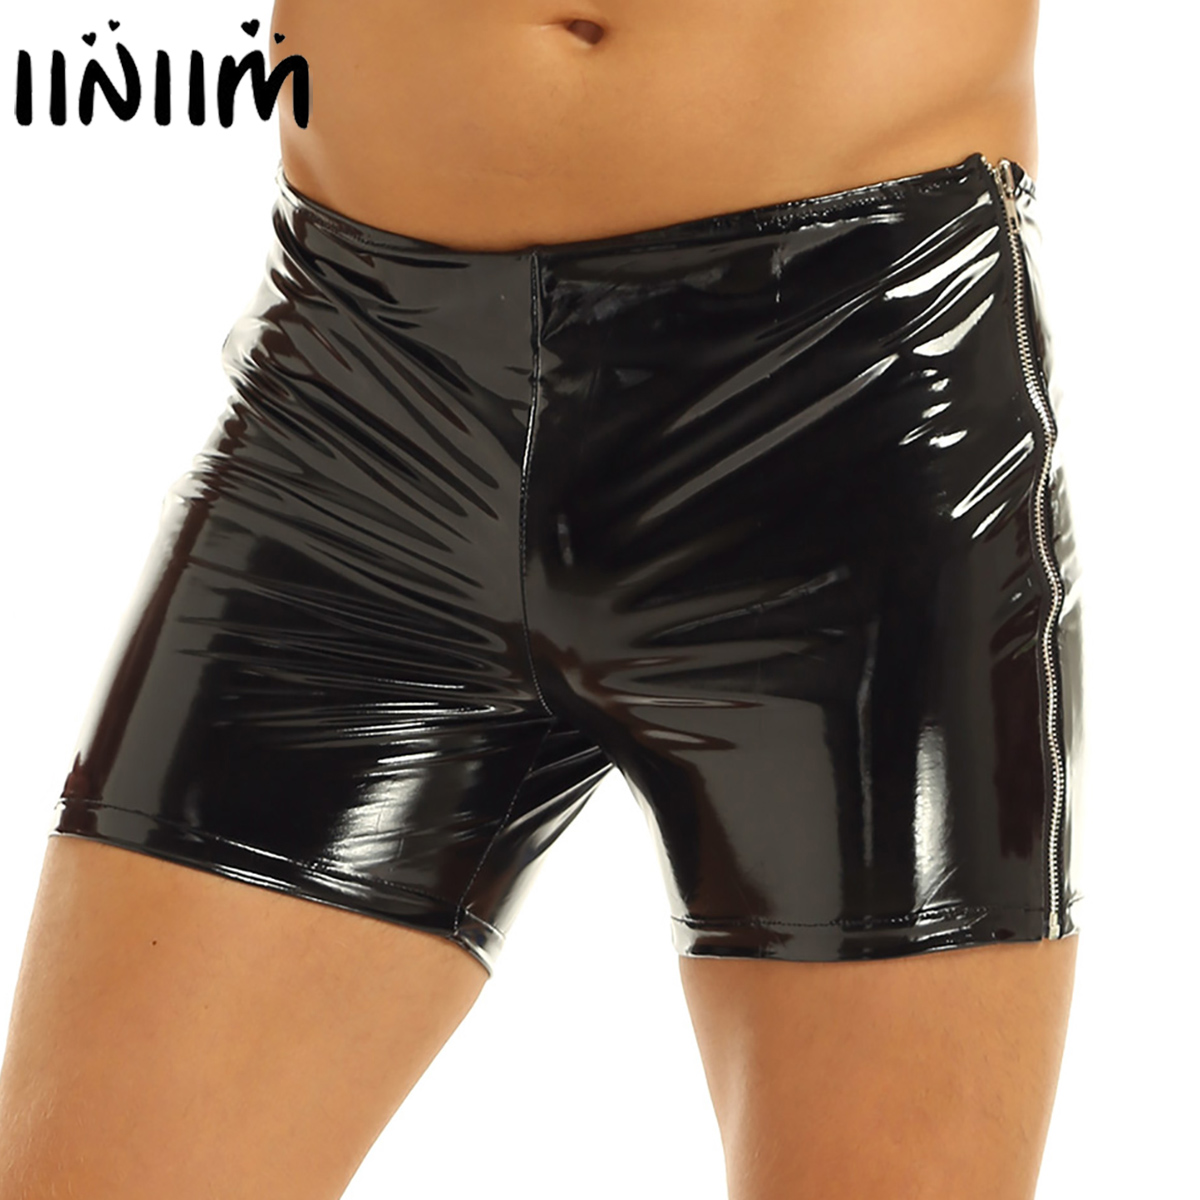 Black Men Shiny Glossy Patent Leather Boxer Short Pants Low Rise Elastic Slim Fit Side Zipper Hot Shorts Sexy Party Club Costume